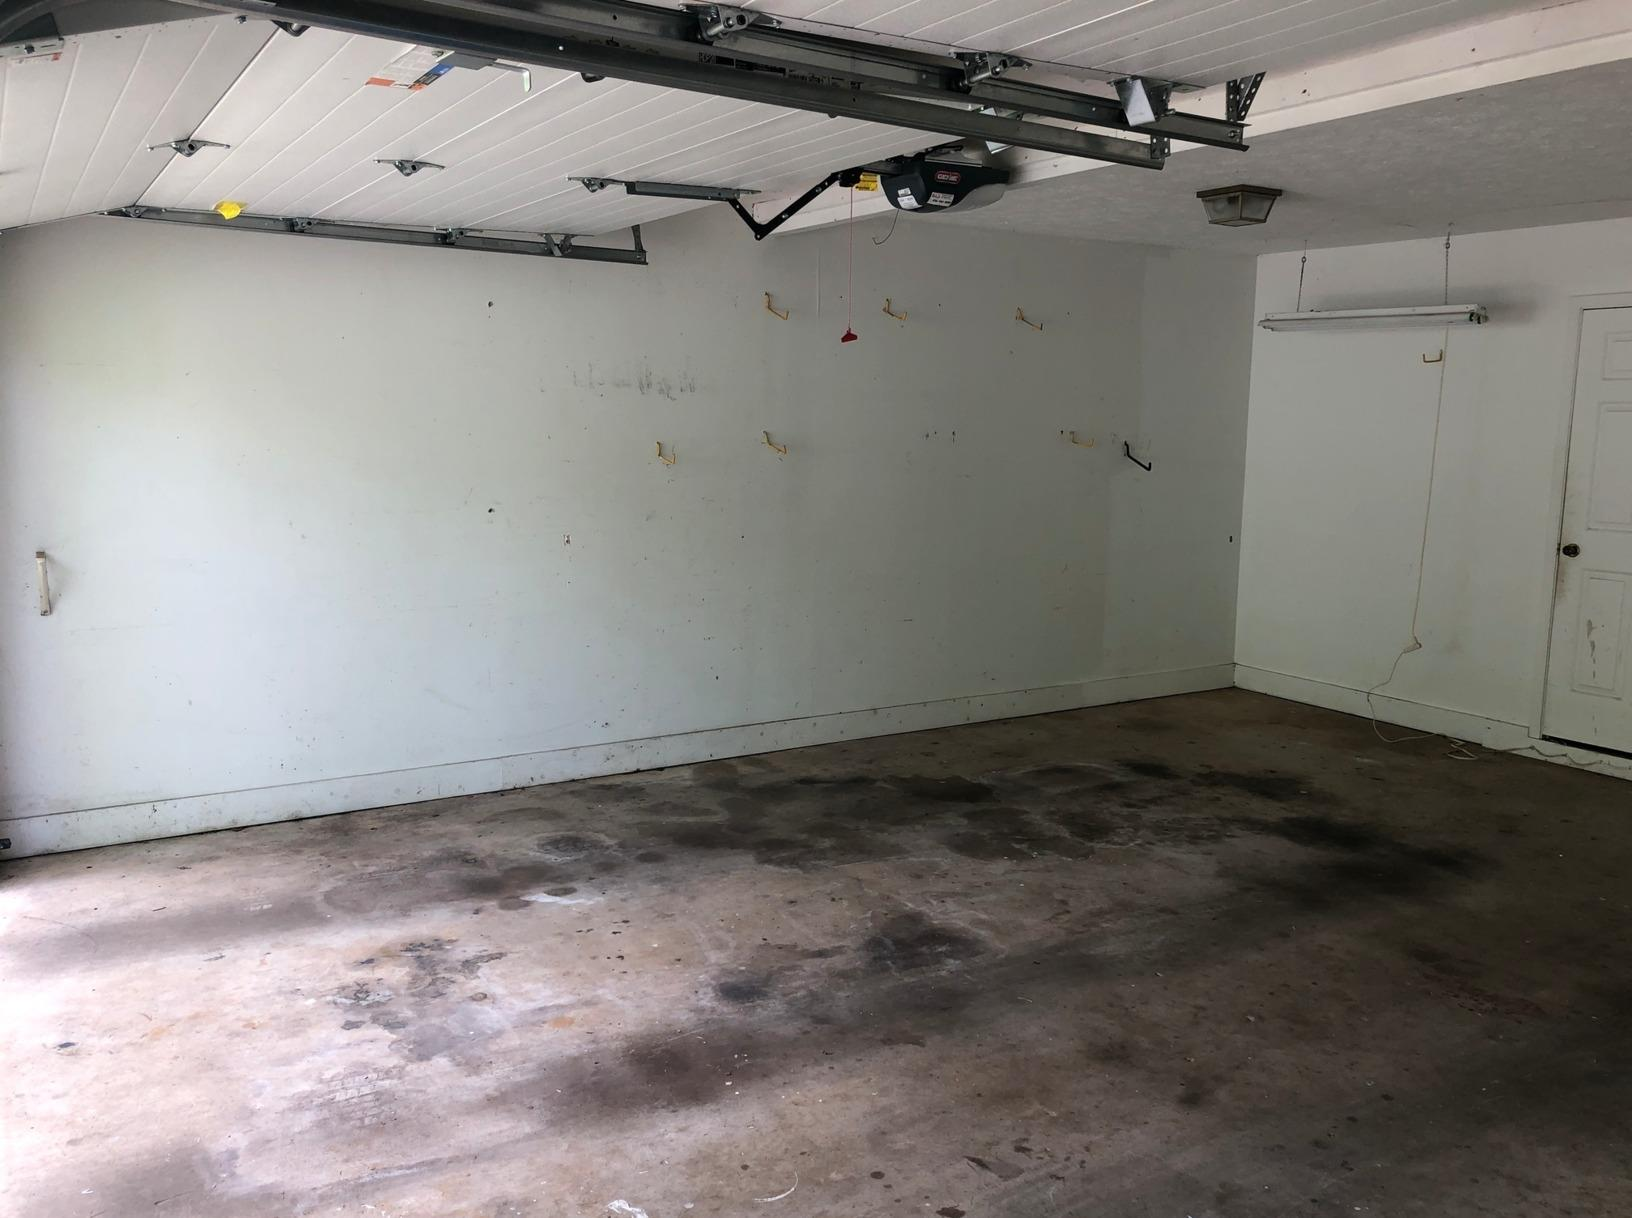 Garage Junk Removal in Alpharetta, GA - After Photo